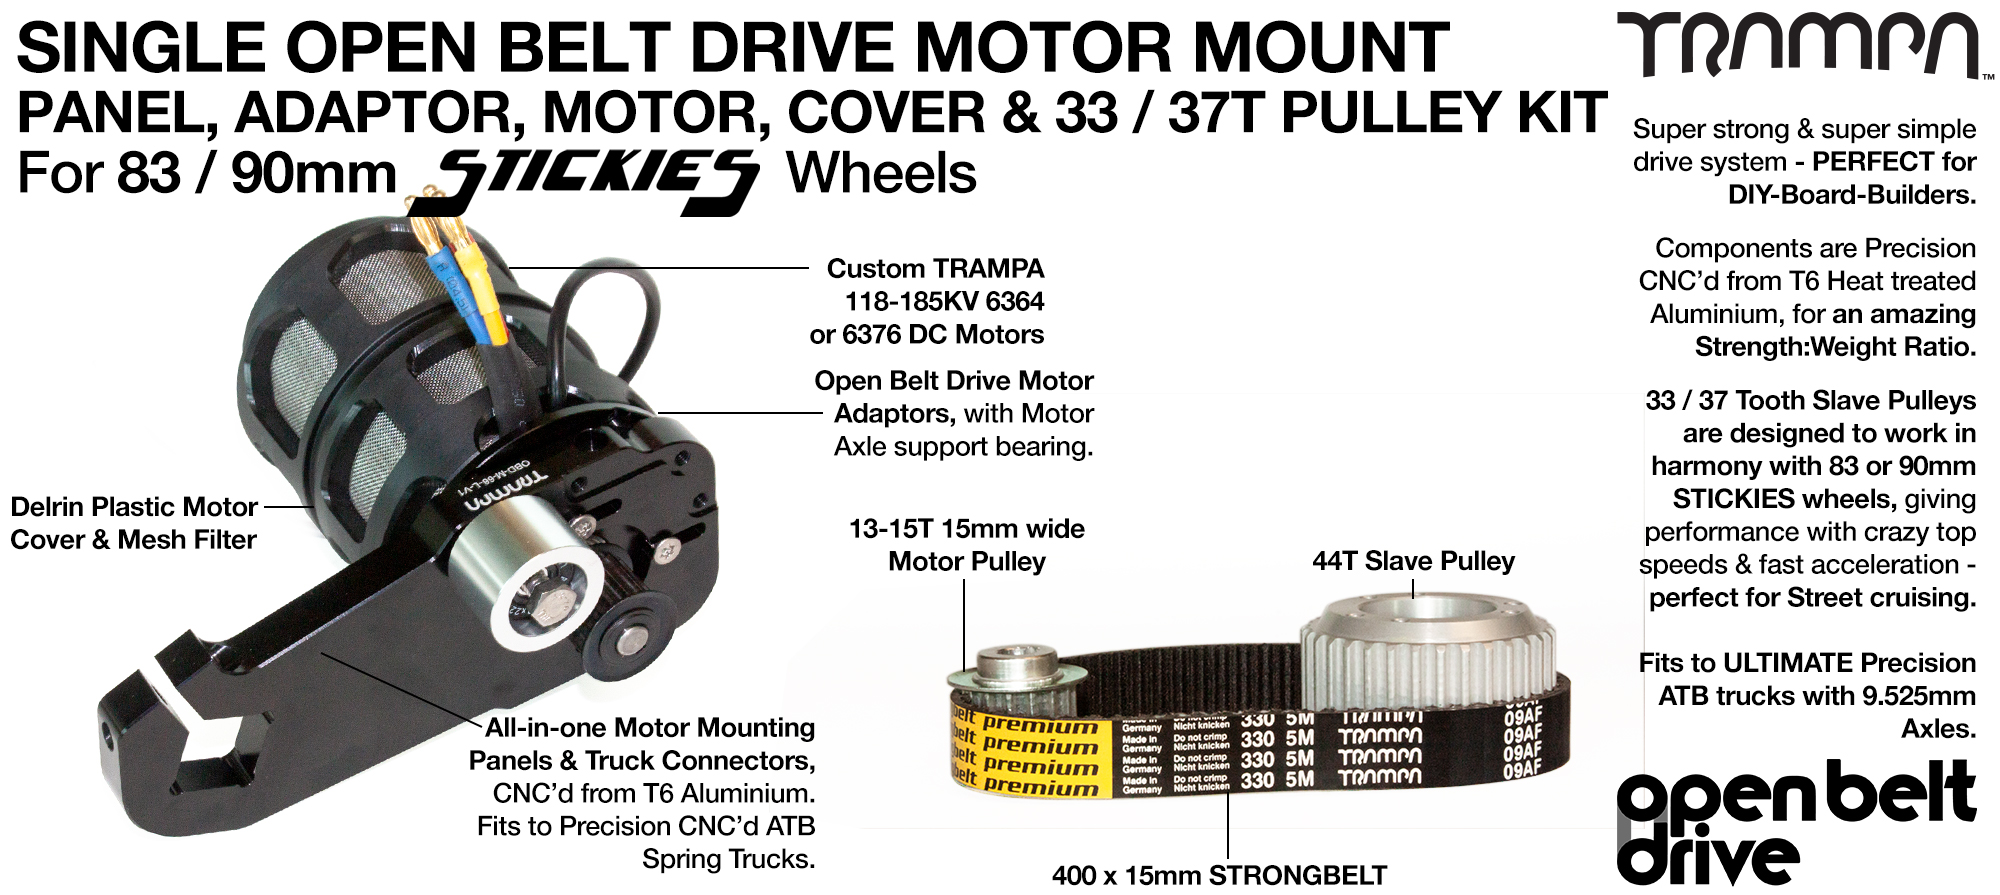 66T OBD Motor Mount with 33 / 37T Pulley kit, Motor & Filters  - SINGLE